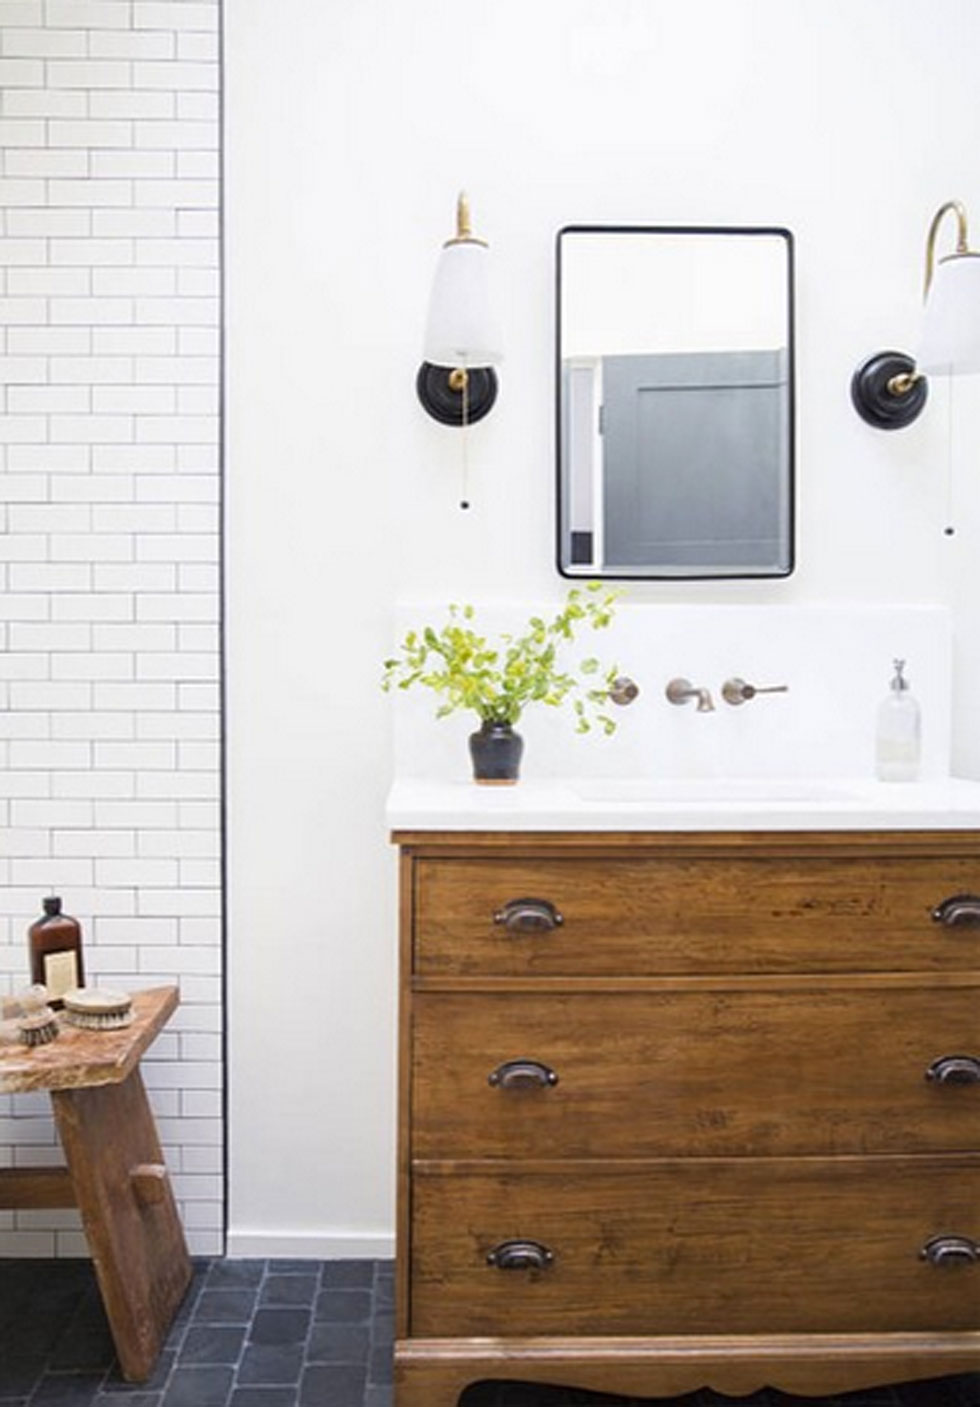 How To Turn A Dresser Into A Bathroom Vanity A One Of A